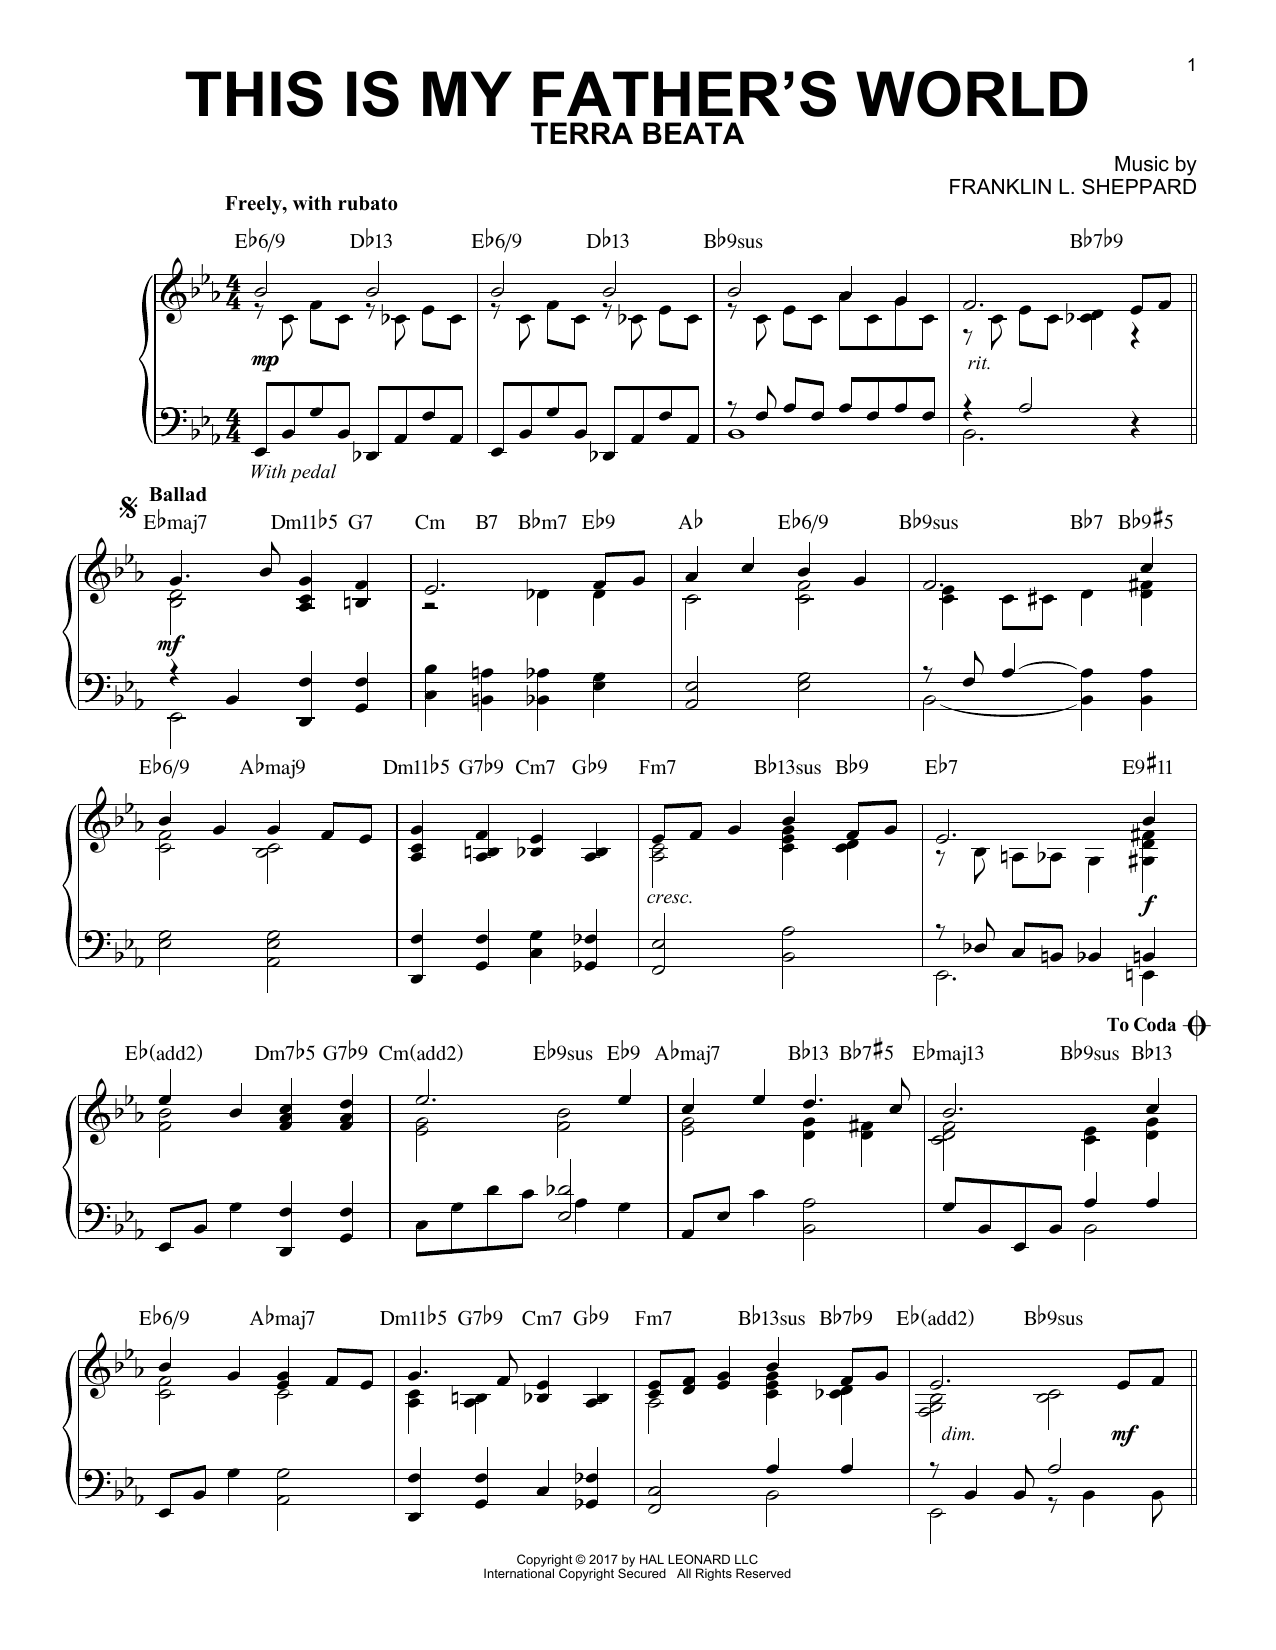 This Is My Father's World [Jazz version] (Piano Solo)